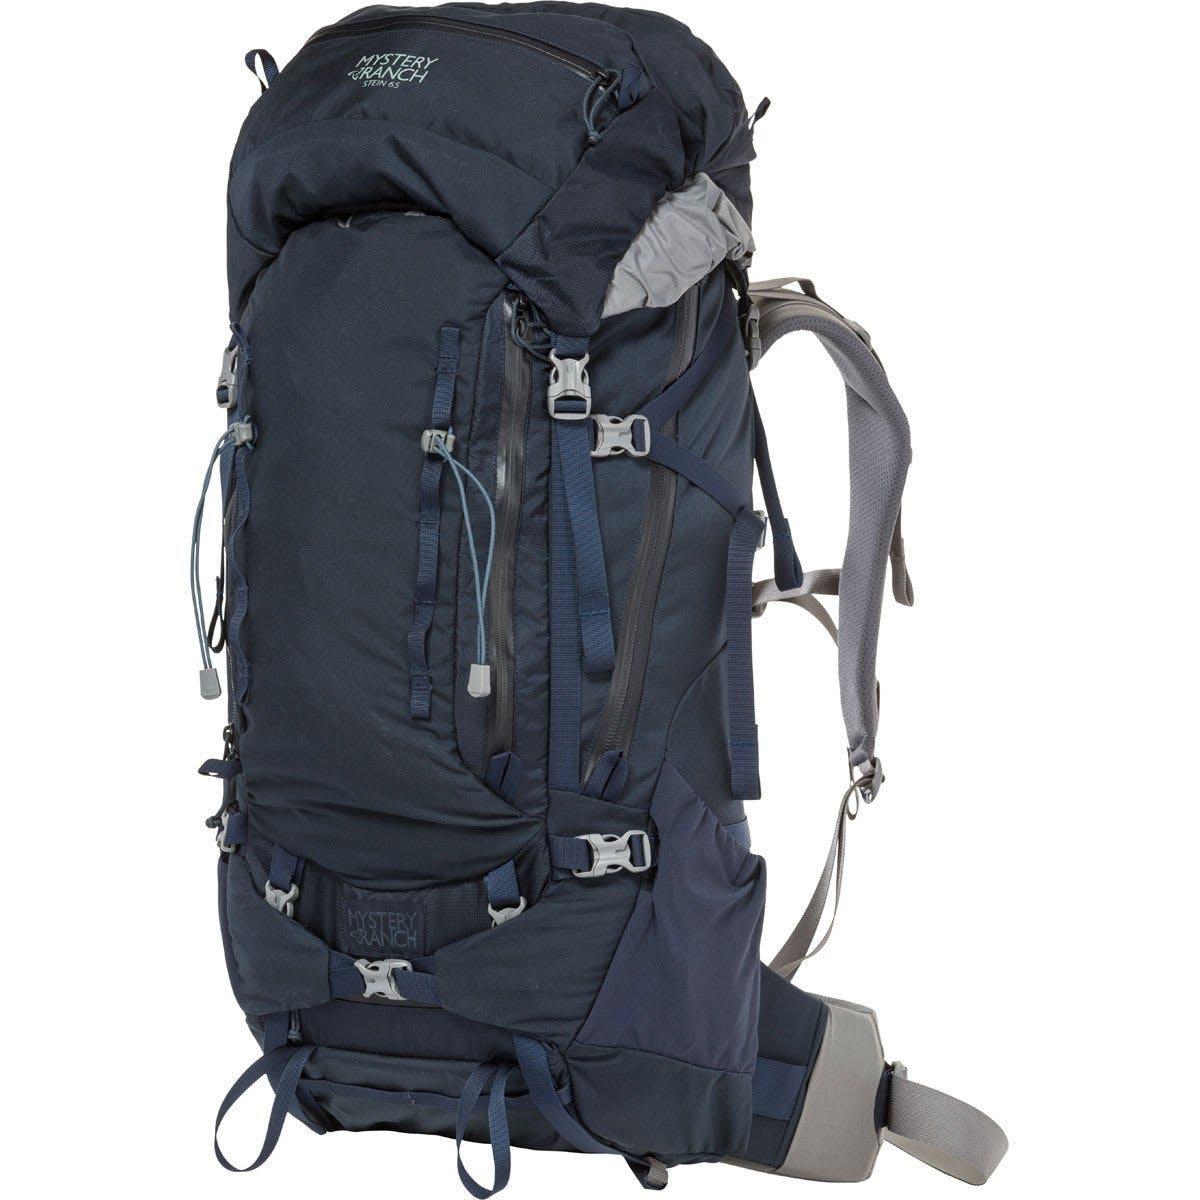 Mystery Ranch Men's Stein 65 Expedition Pack Backpack in Black, Size XL